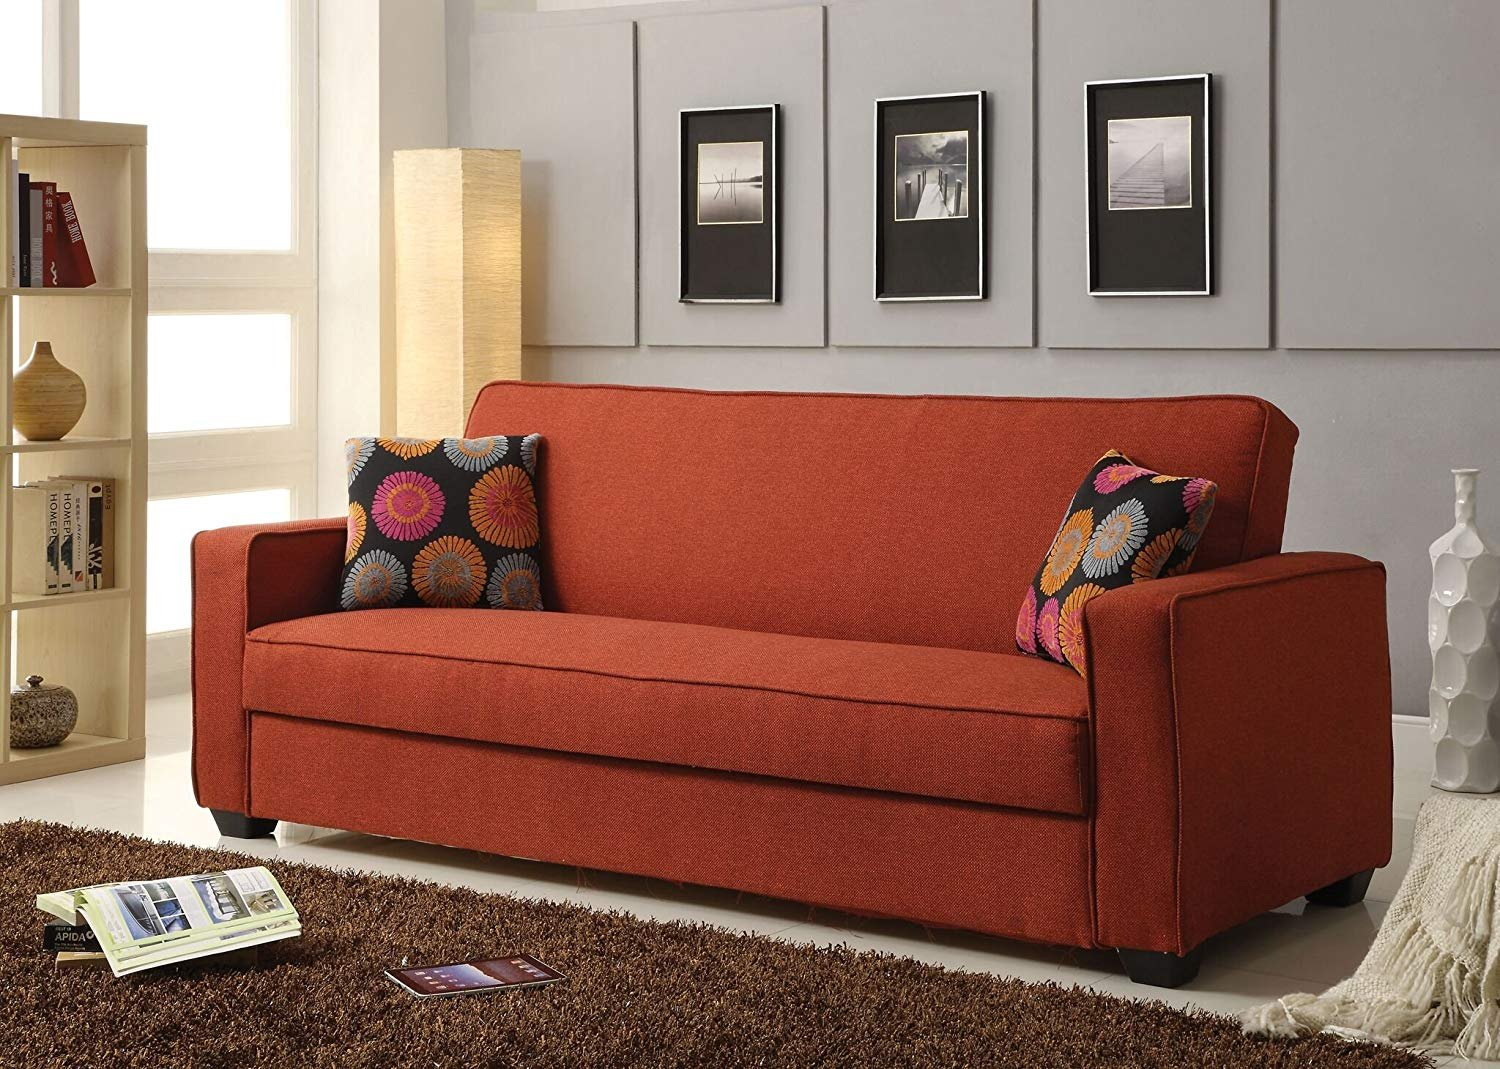 Amazon.com: Q-Max Sofa, Red: Kitchen & Dining